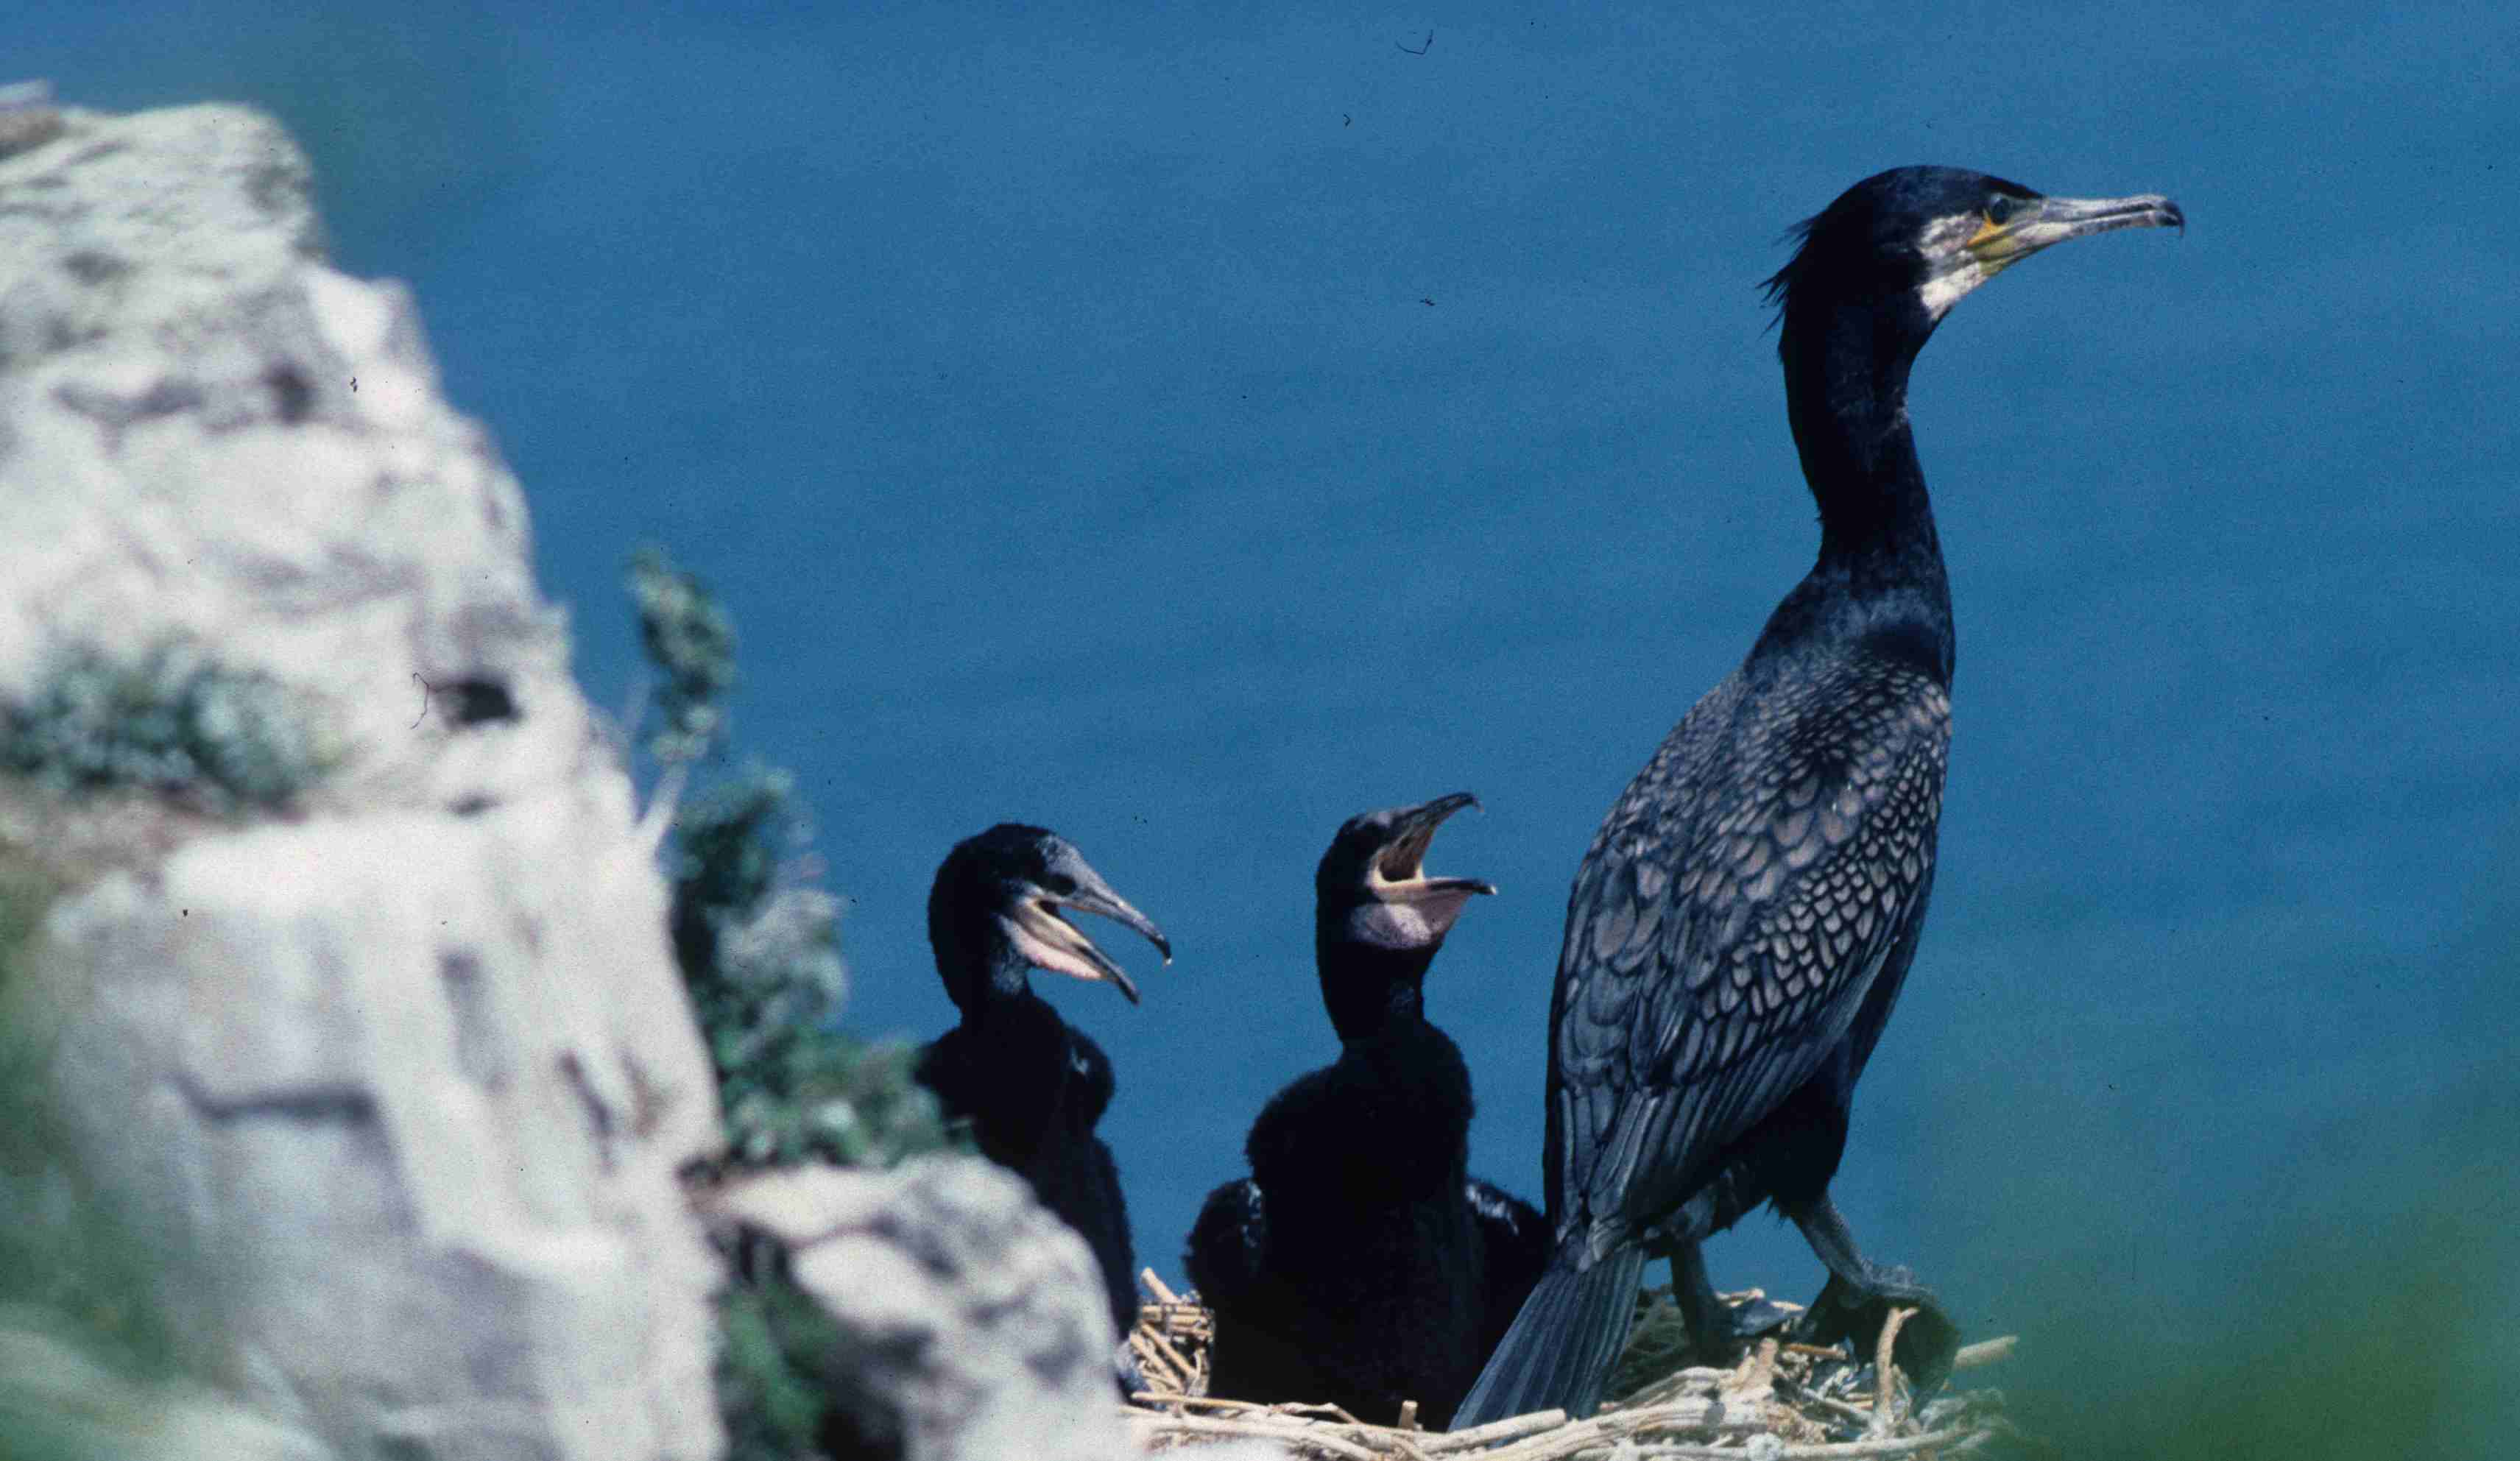 Cormorant (Phalacrocorax carbo). Copyright J B Ratcliffe 1990